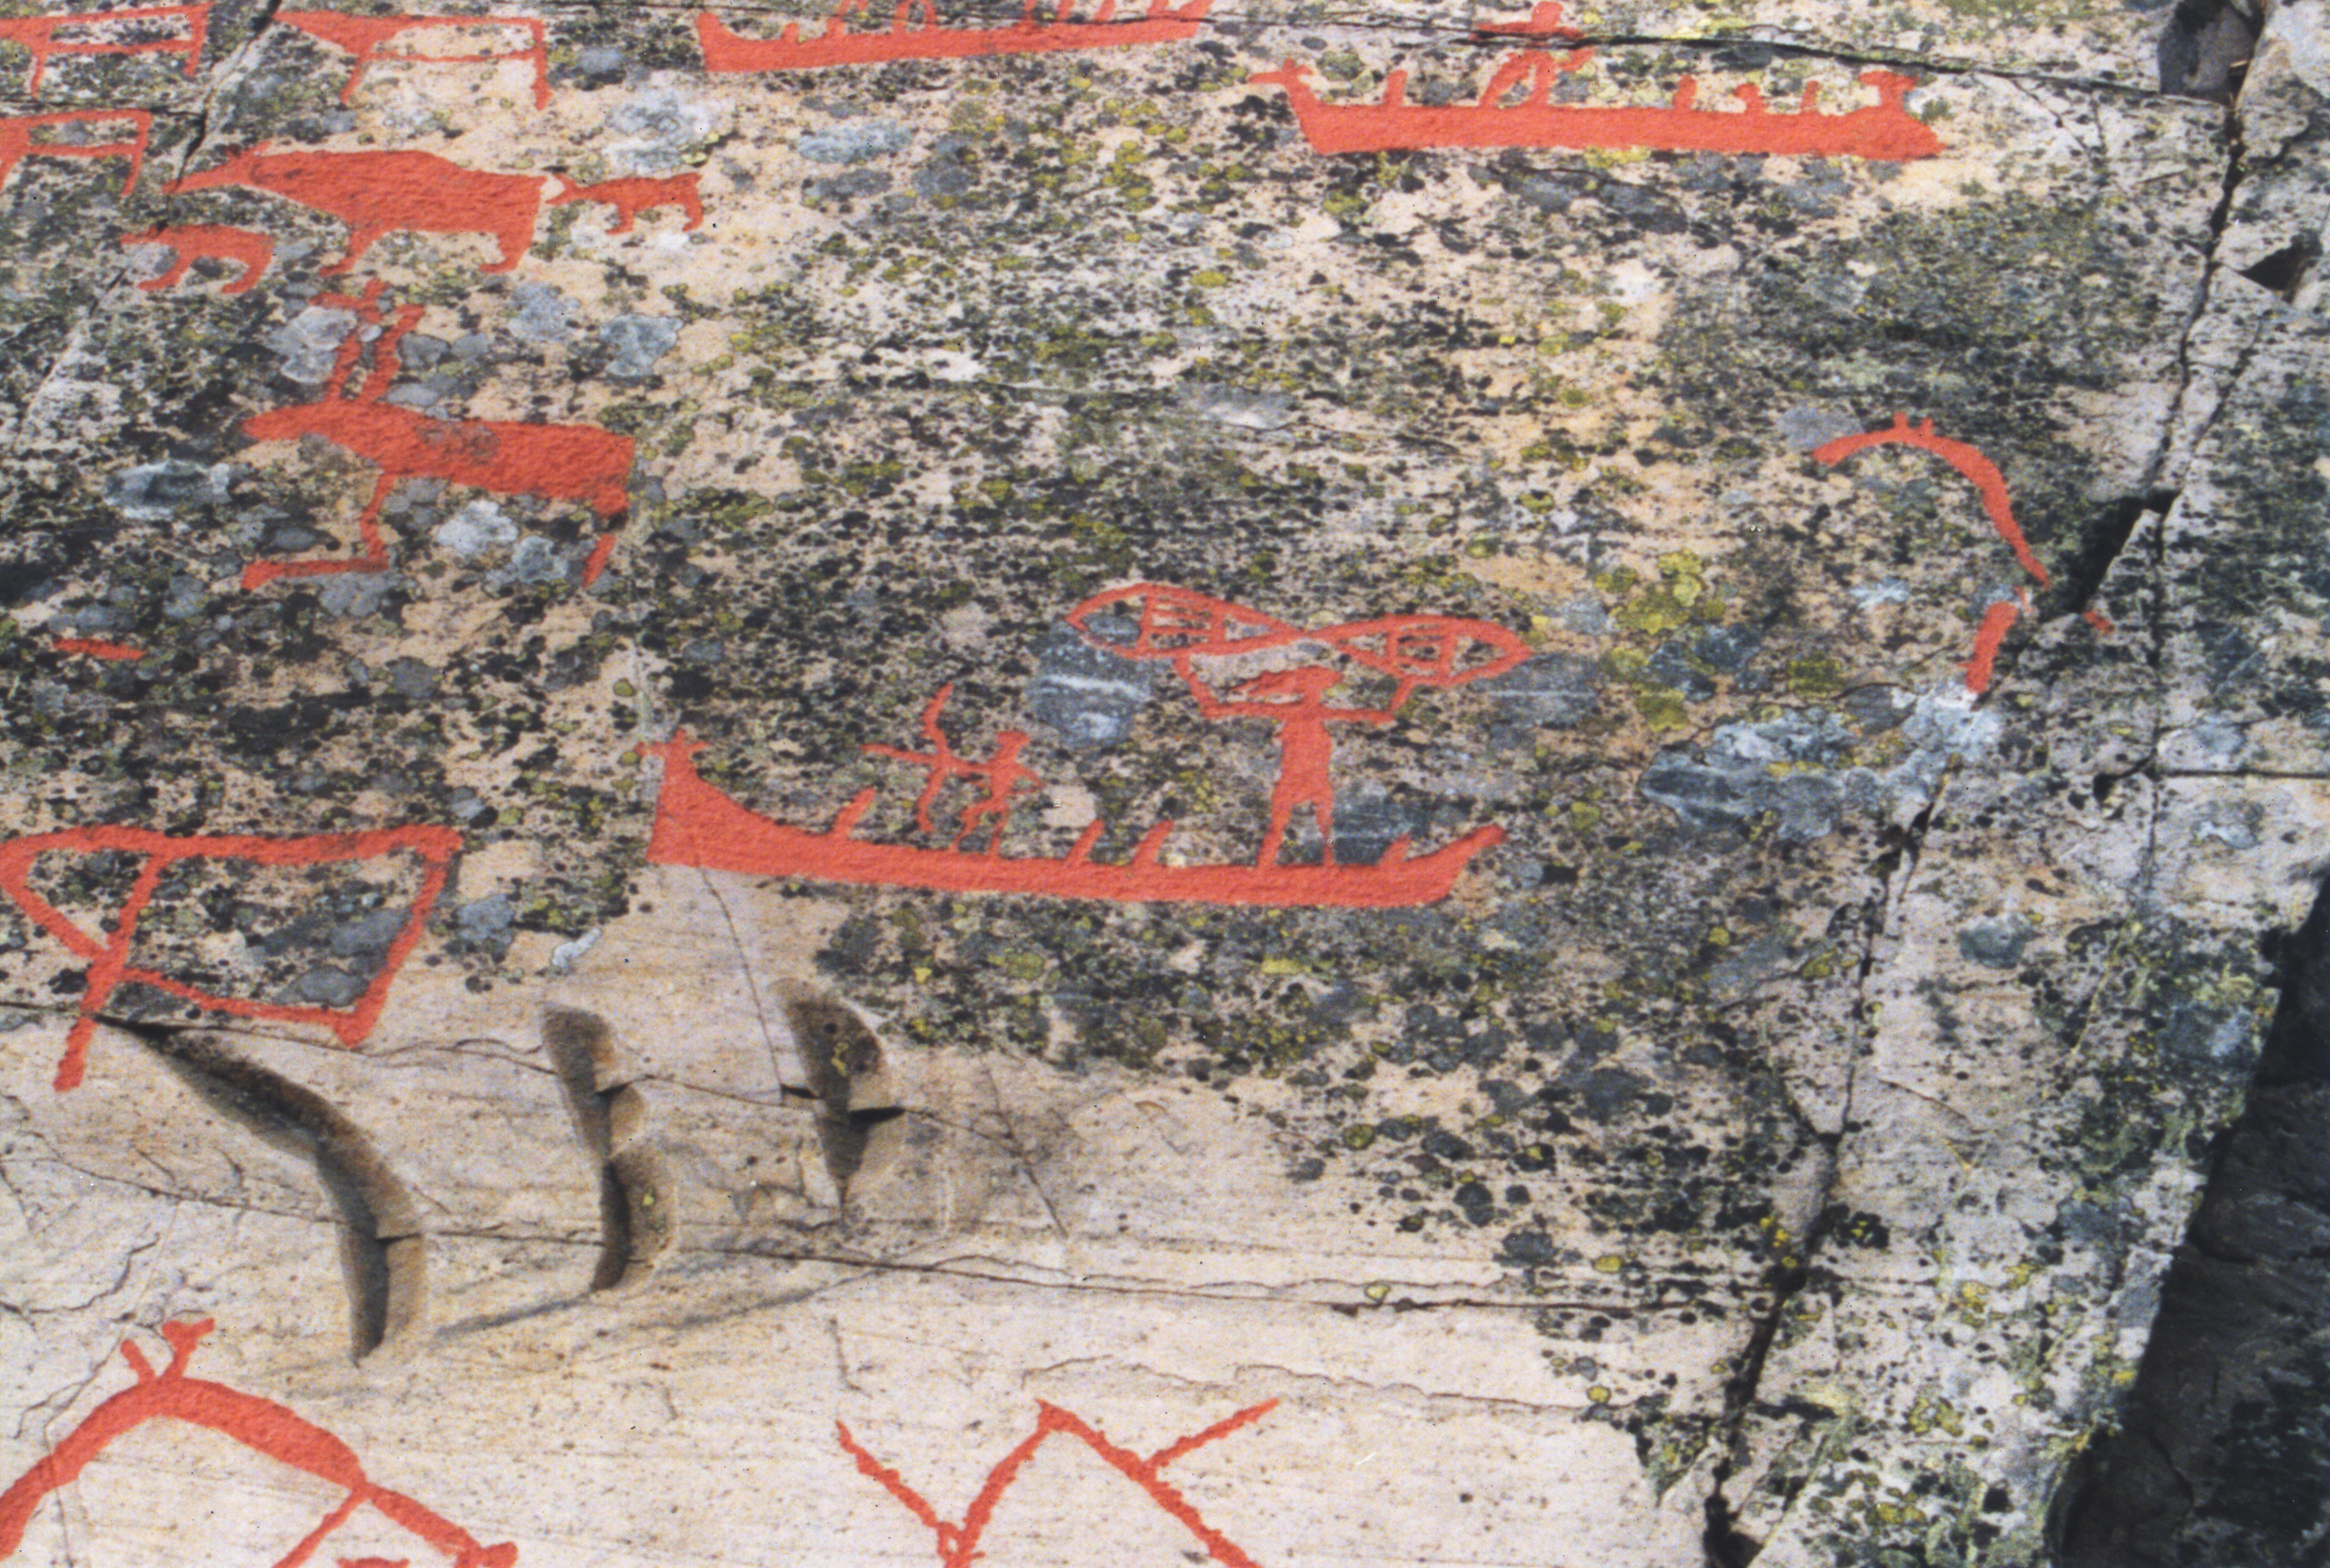 Rock carvings at alta norway images and stock photos page